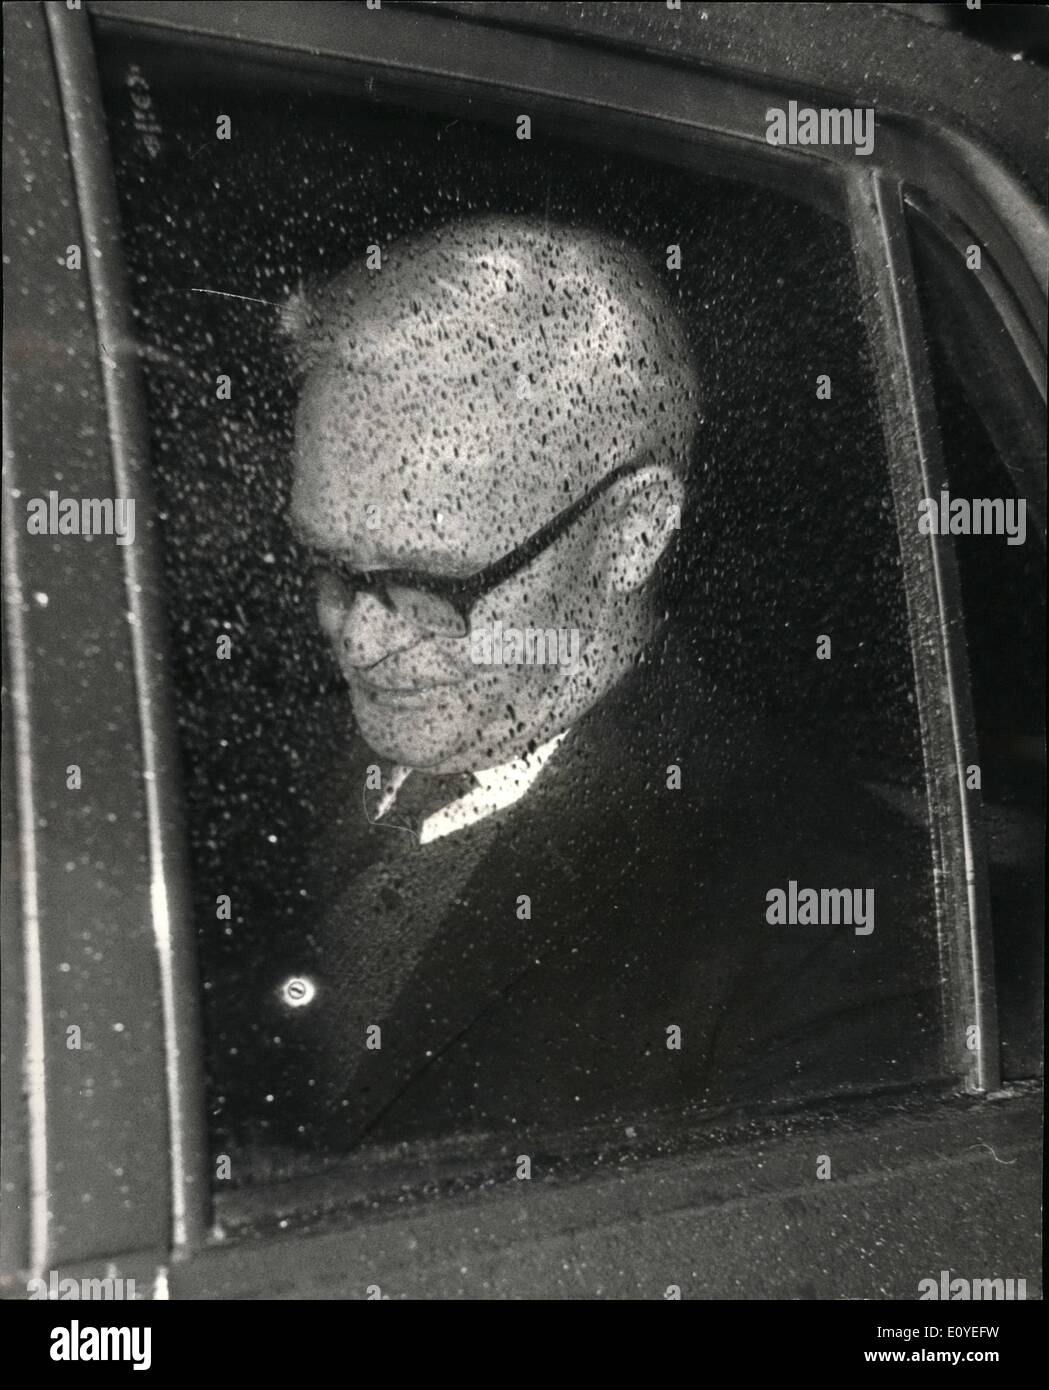 Jan. 01, 1970 - Mp arrested under the official secrets act Mr. William James Owen 68 years old labour mp for the norpeth division of northumberland was arrested last night and charged under the official secrete act. He is appearing at bow-street magistrates conce in London this morning. and was put on reamand untill monday. Mr.owen an ex-miner is chariman of london - based Berolina travel a company which promotes toriem, and travel in communicst east germany - Stock Image